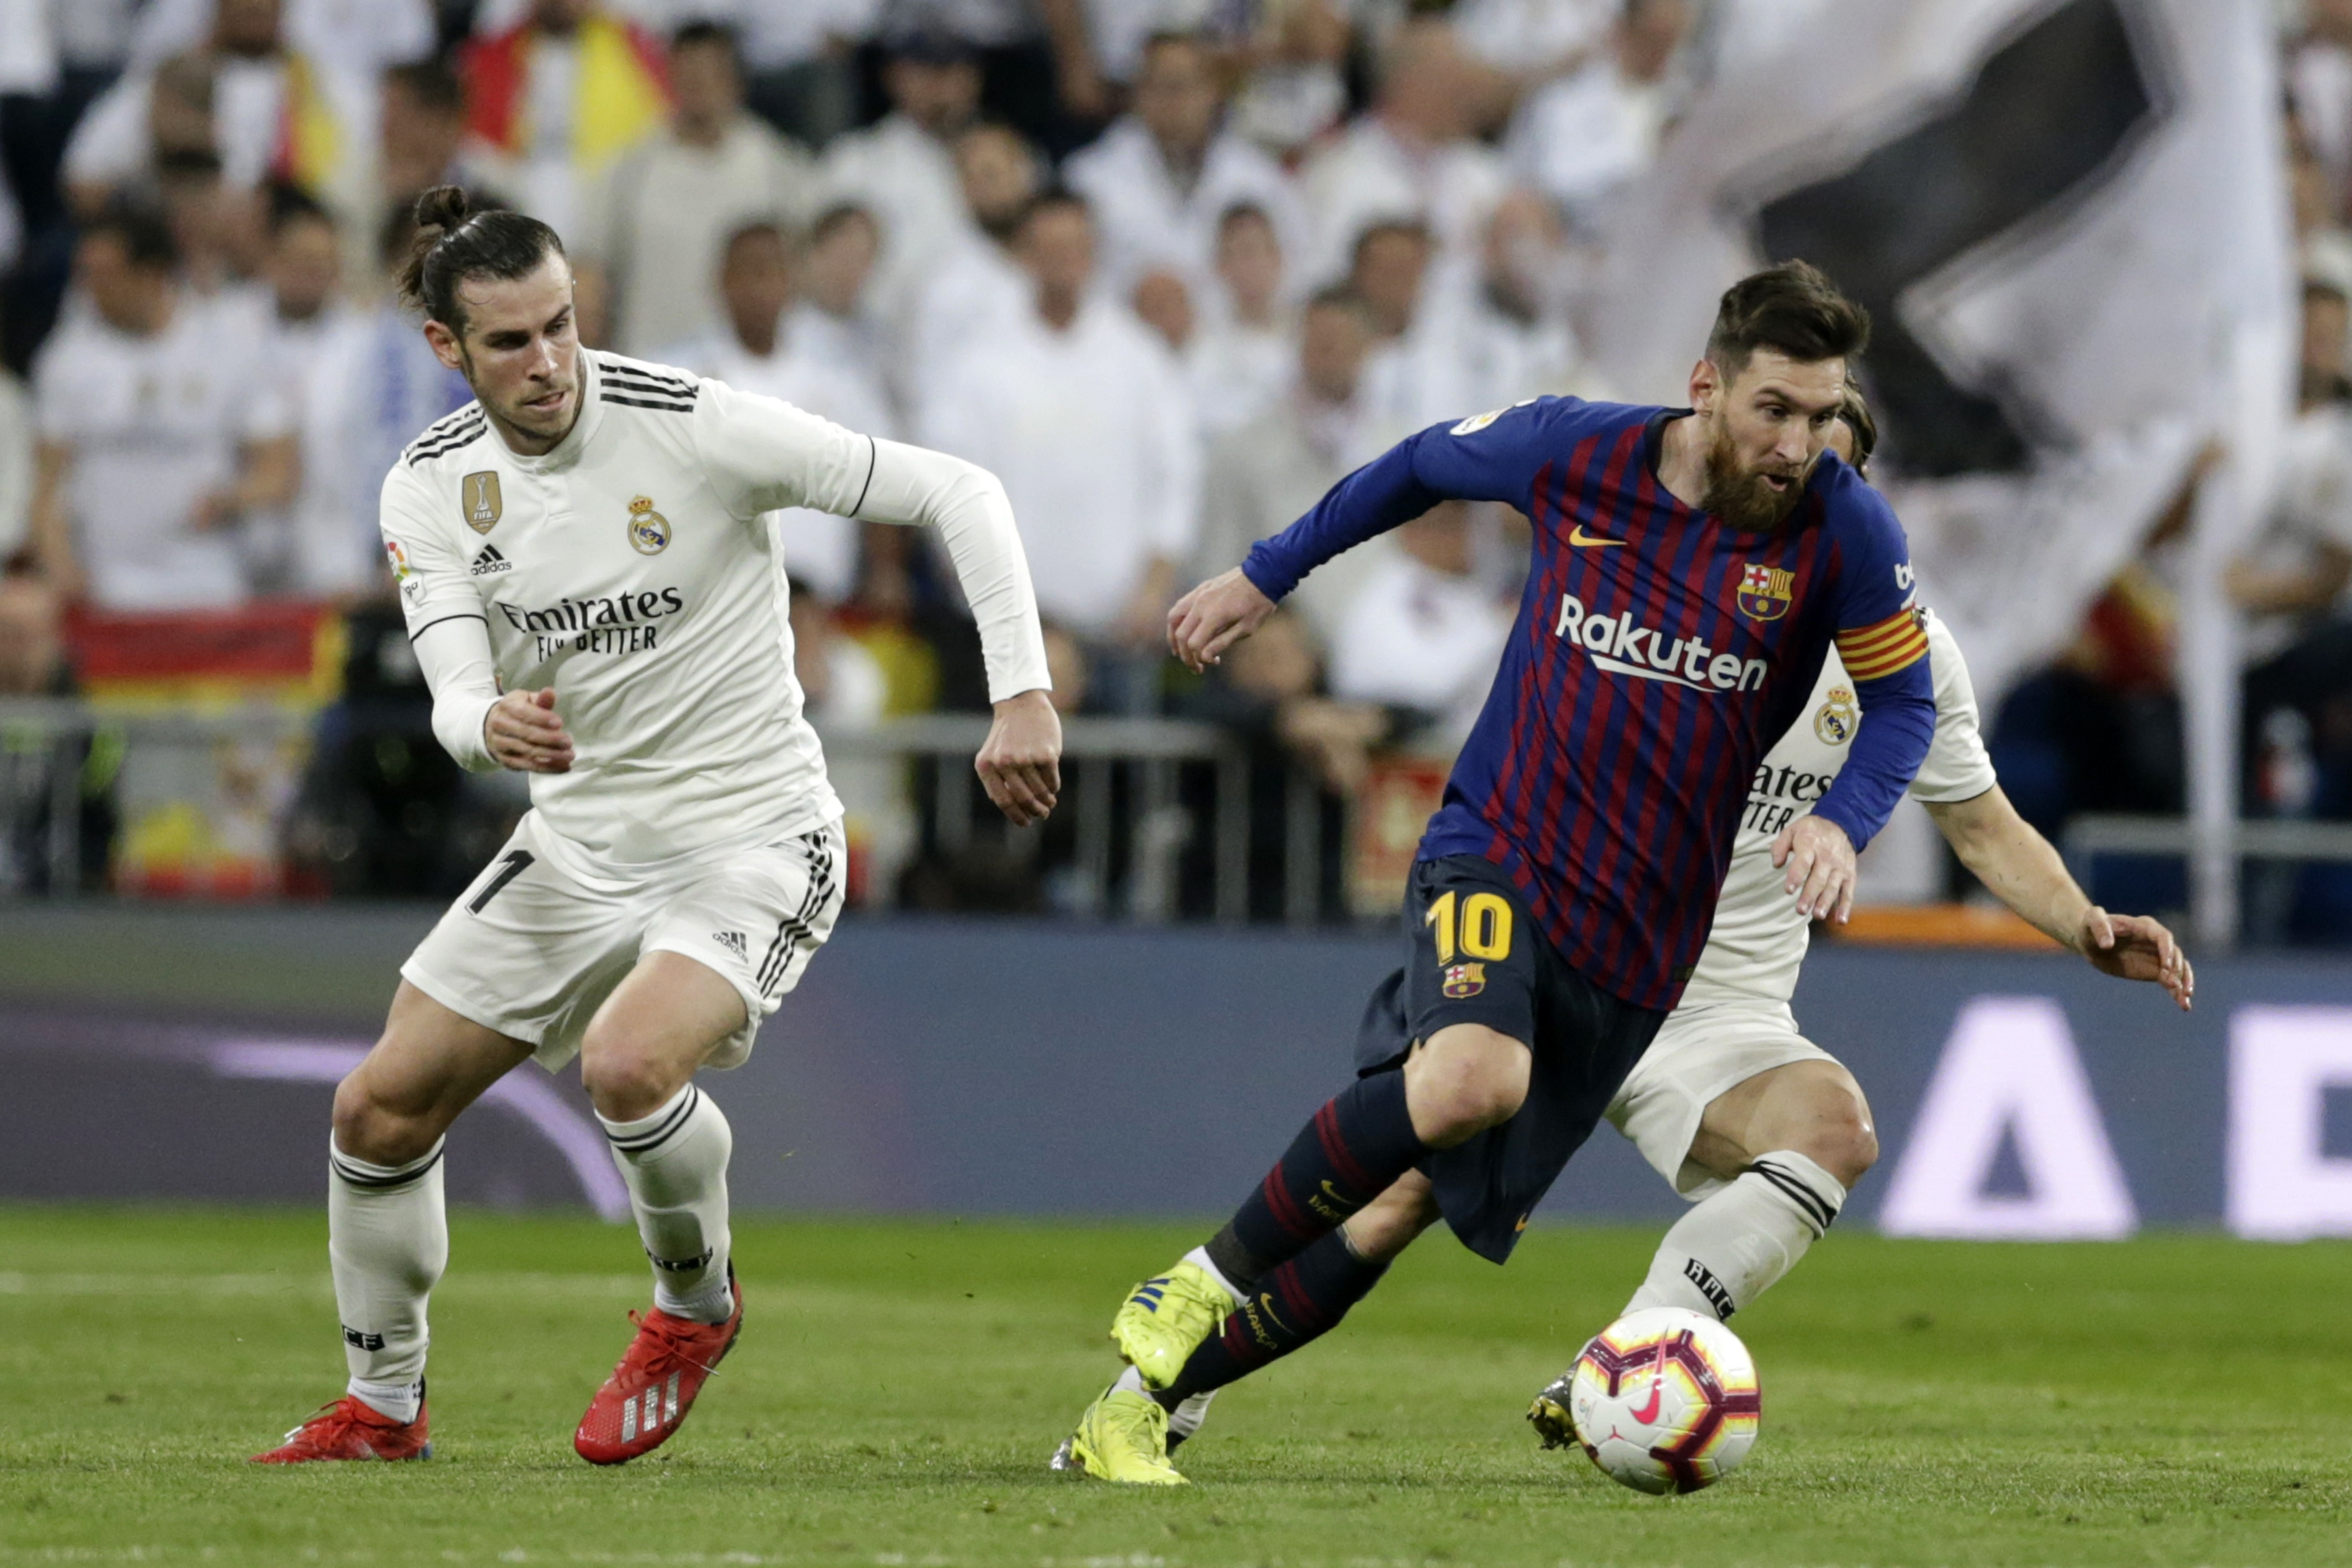 Barcelona Vs Real Madrid Live Stream Score Updates Odds Tv Channel Watch El Clasico Free Online 3 1 2020 Oregonlive Com Barcelona played real madrid at the la liga of spain on october 24. 2